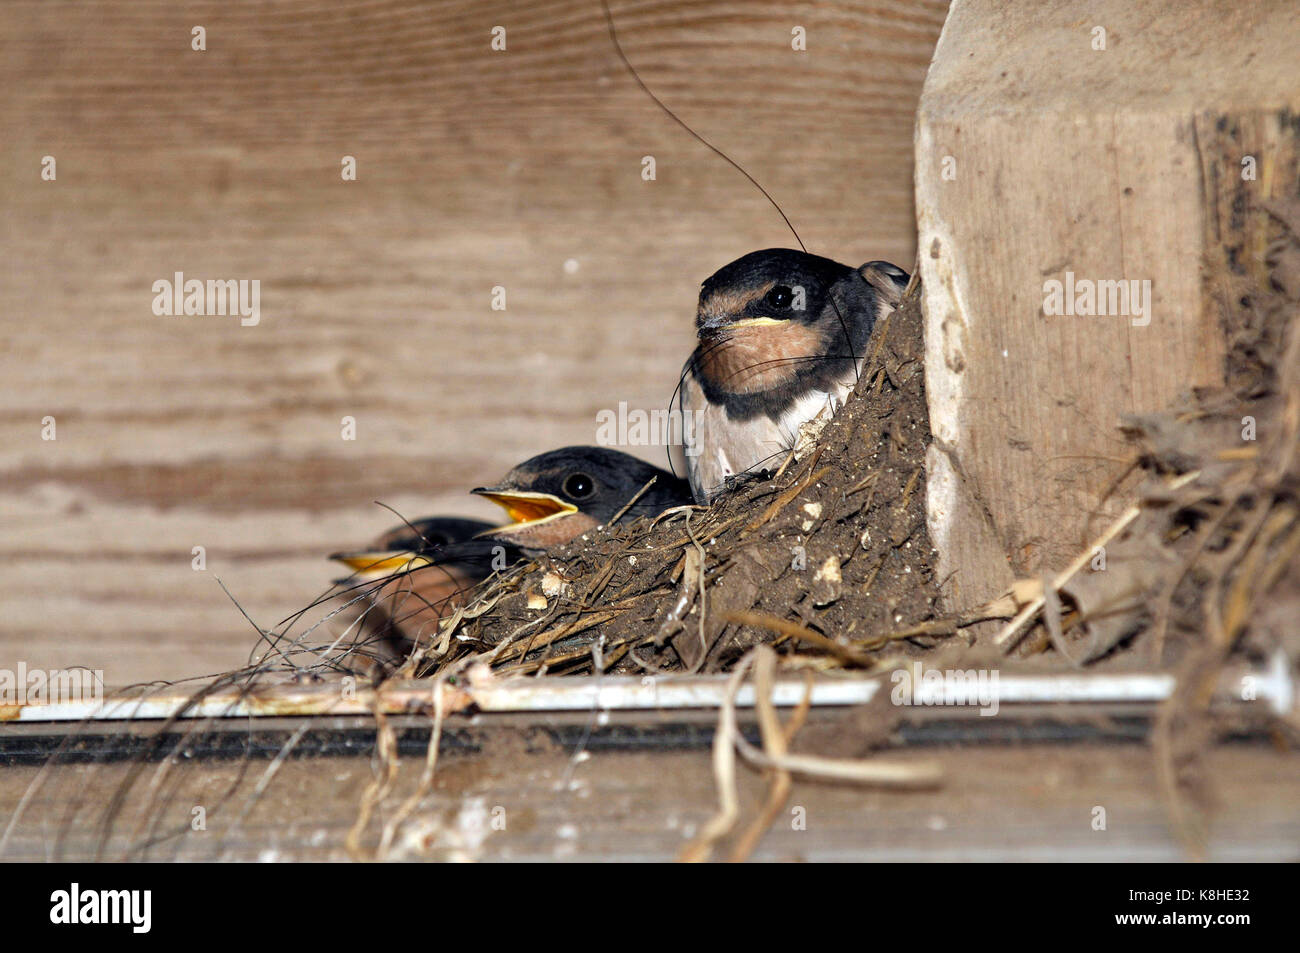 Barn nest of three swallow chicks hirundo rustica with mouth gapes open begging and calling for food in the nest - Stock Image